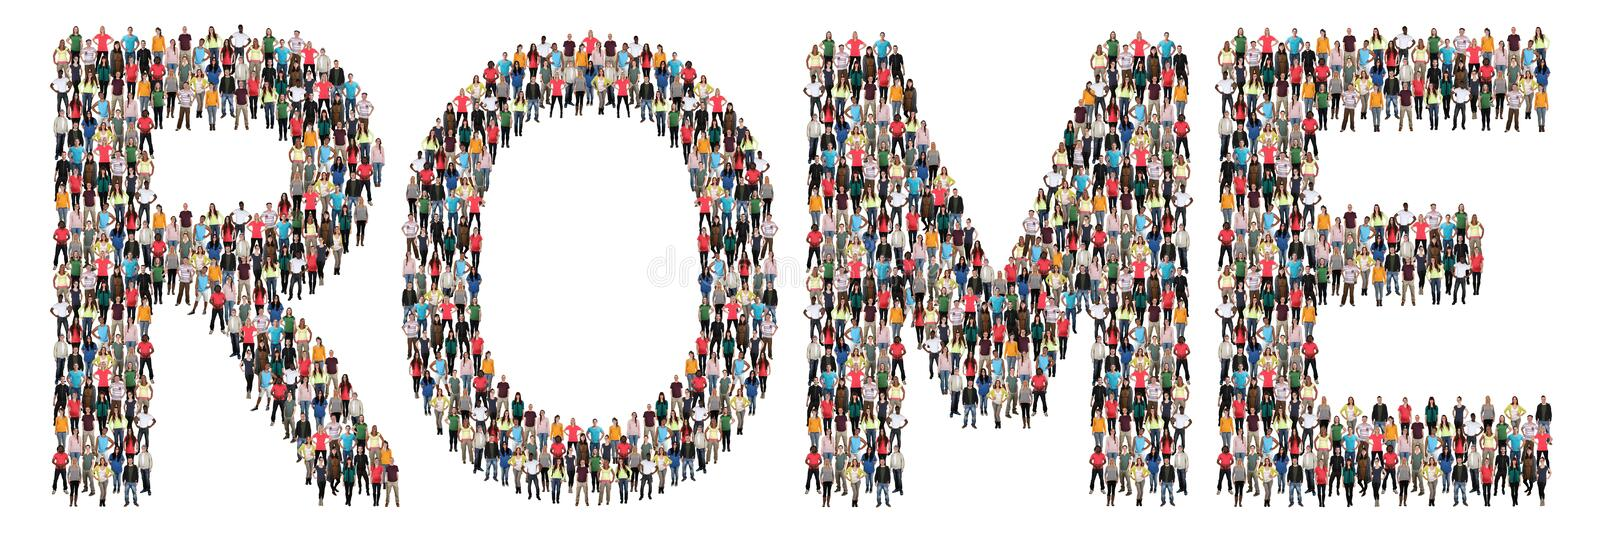 Rome multi ethnic group of people stock photography